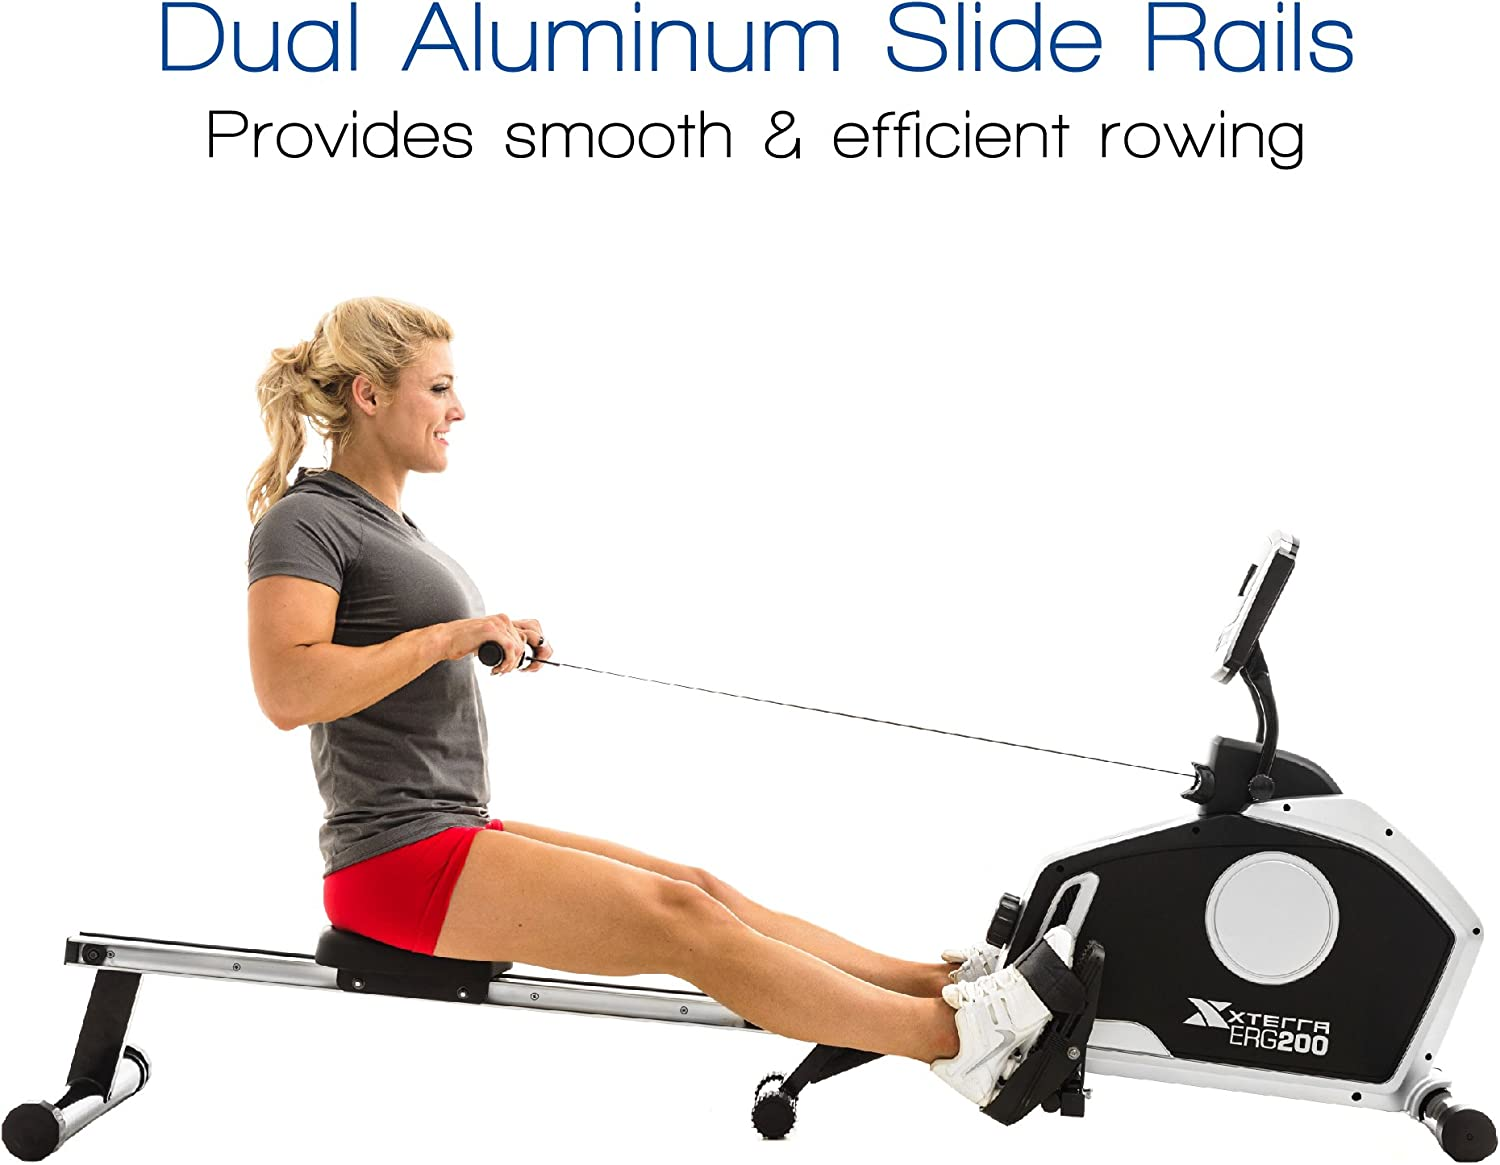 Amazon.com : XTERRA Fitness ERG200 Folding Magnetic Resistance Rower : Sports & Outdoors